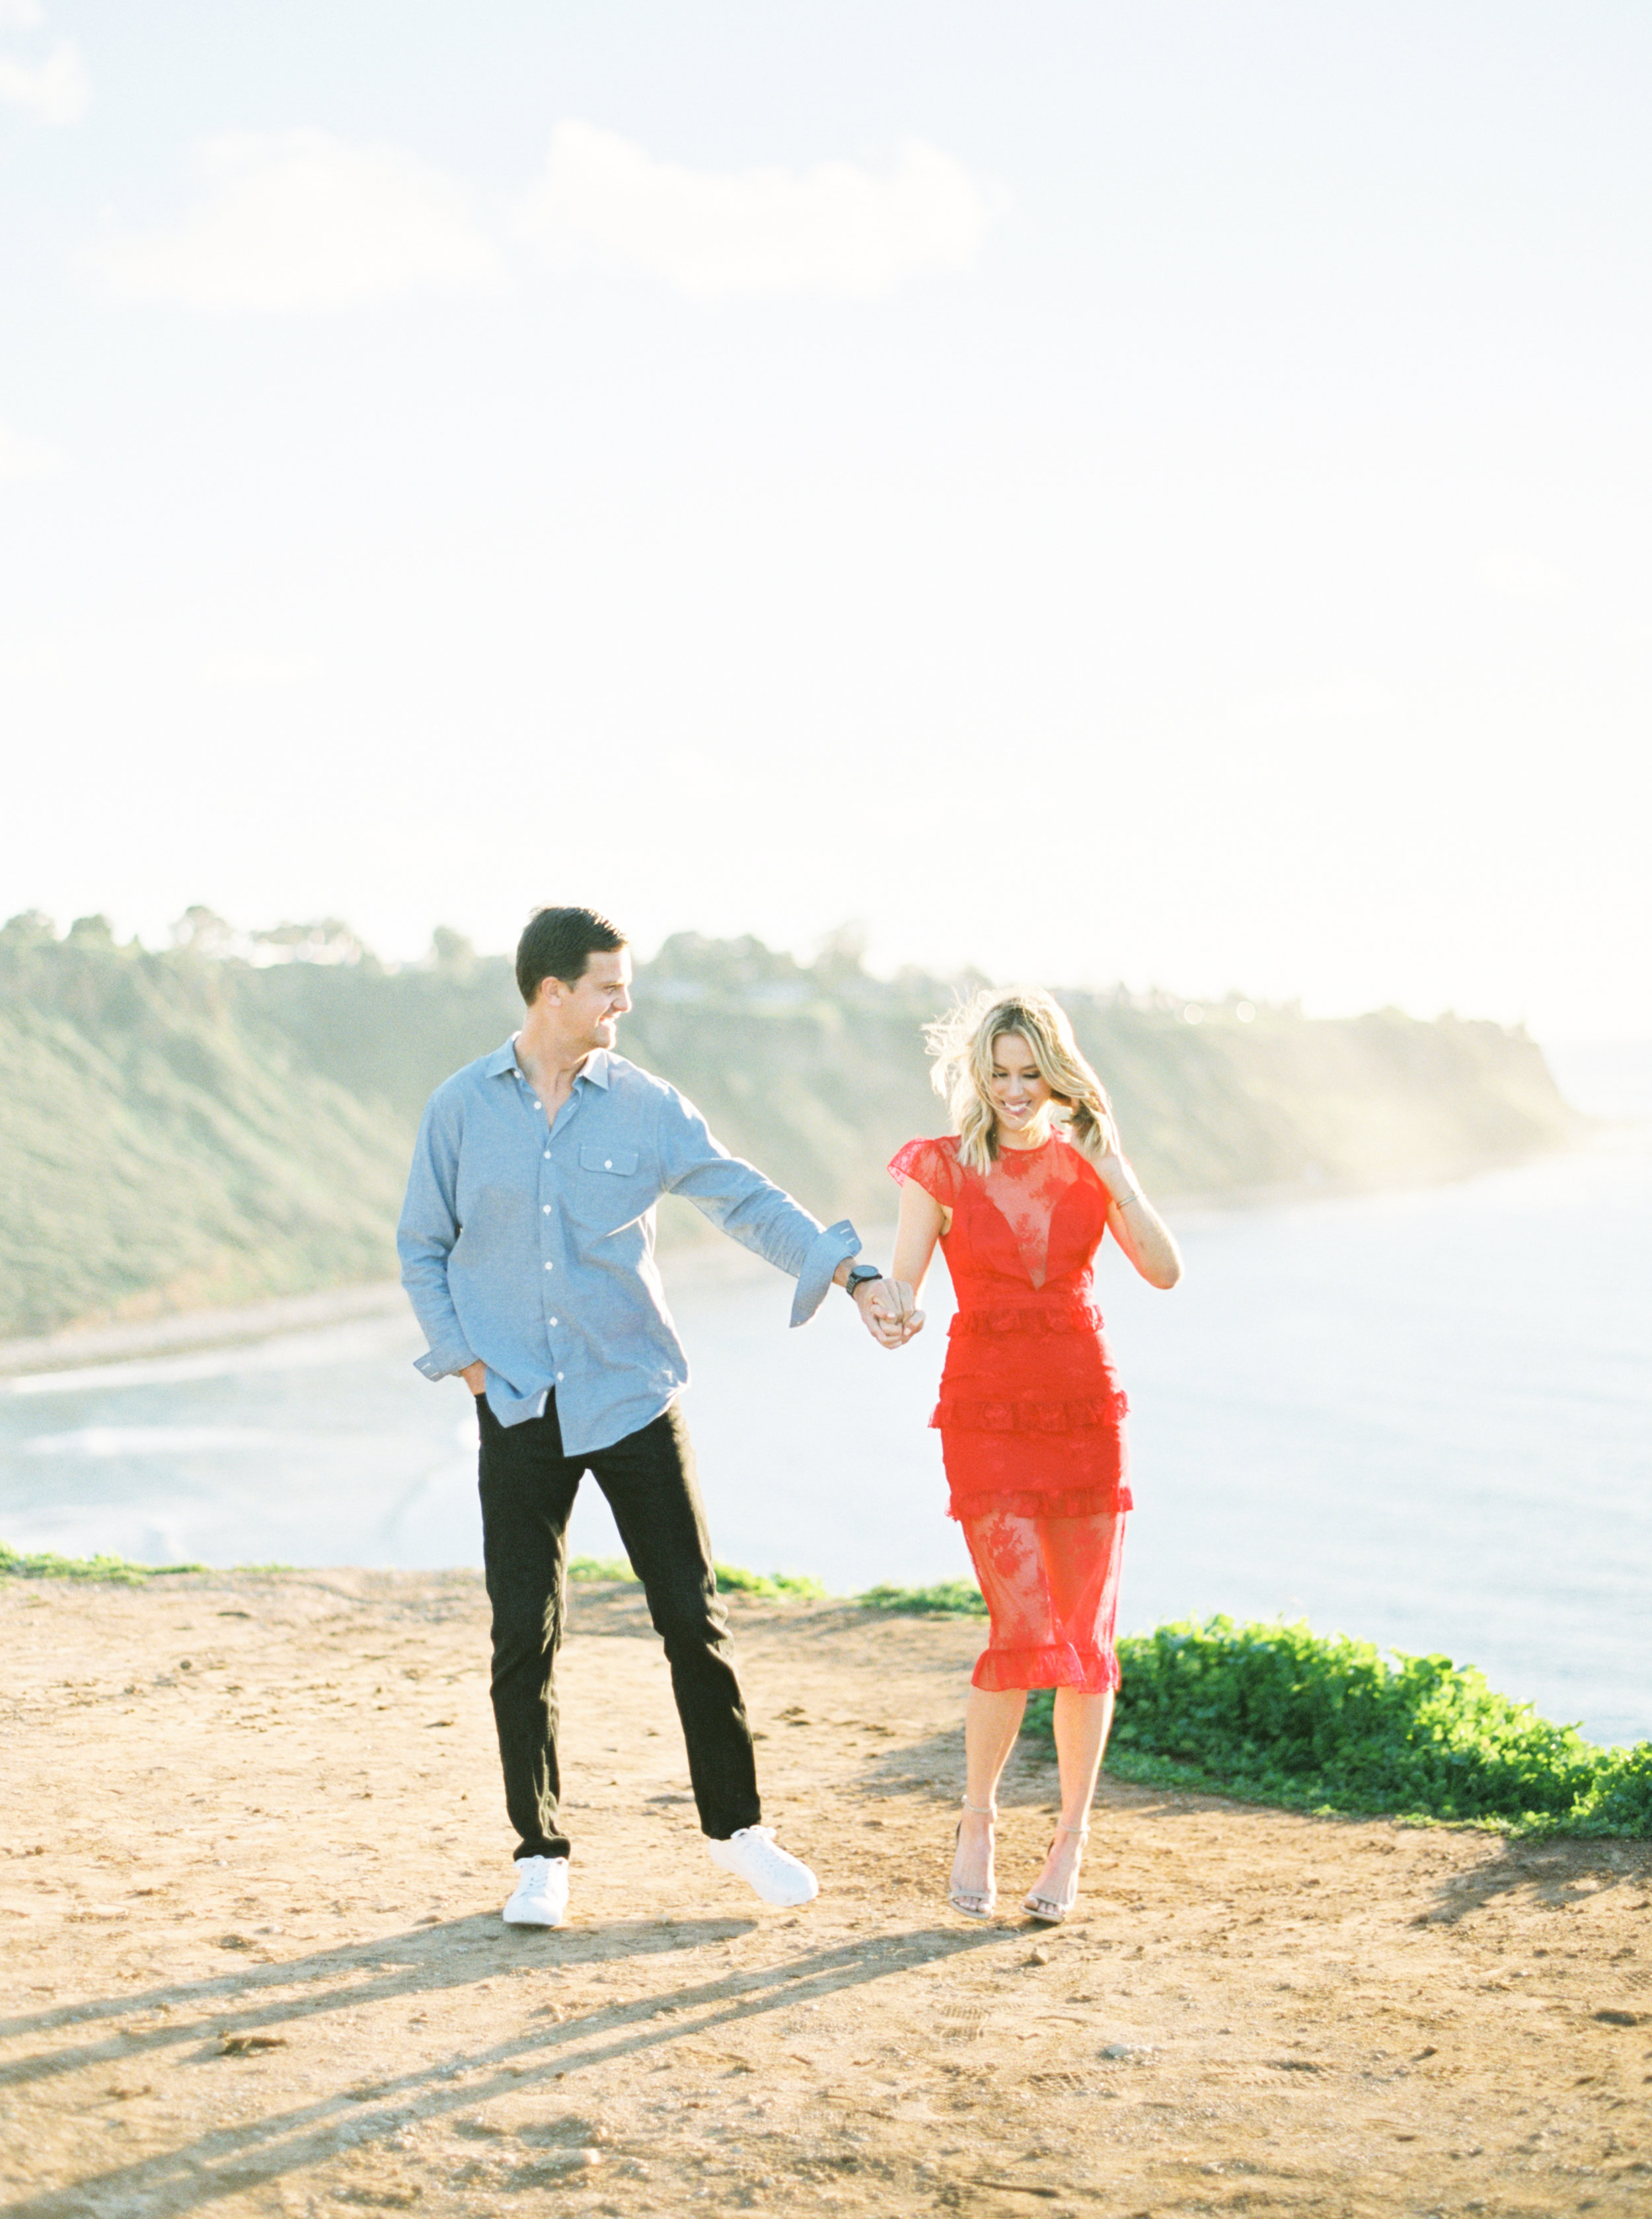 Rachel Owens Photography - Palos Verdes Beach Engagement - 7.jpg